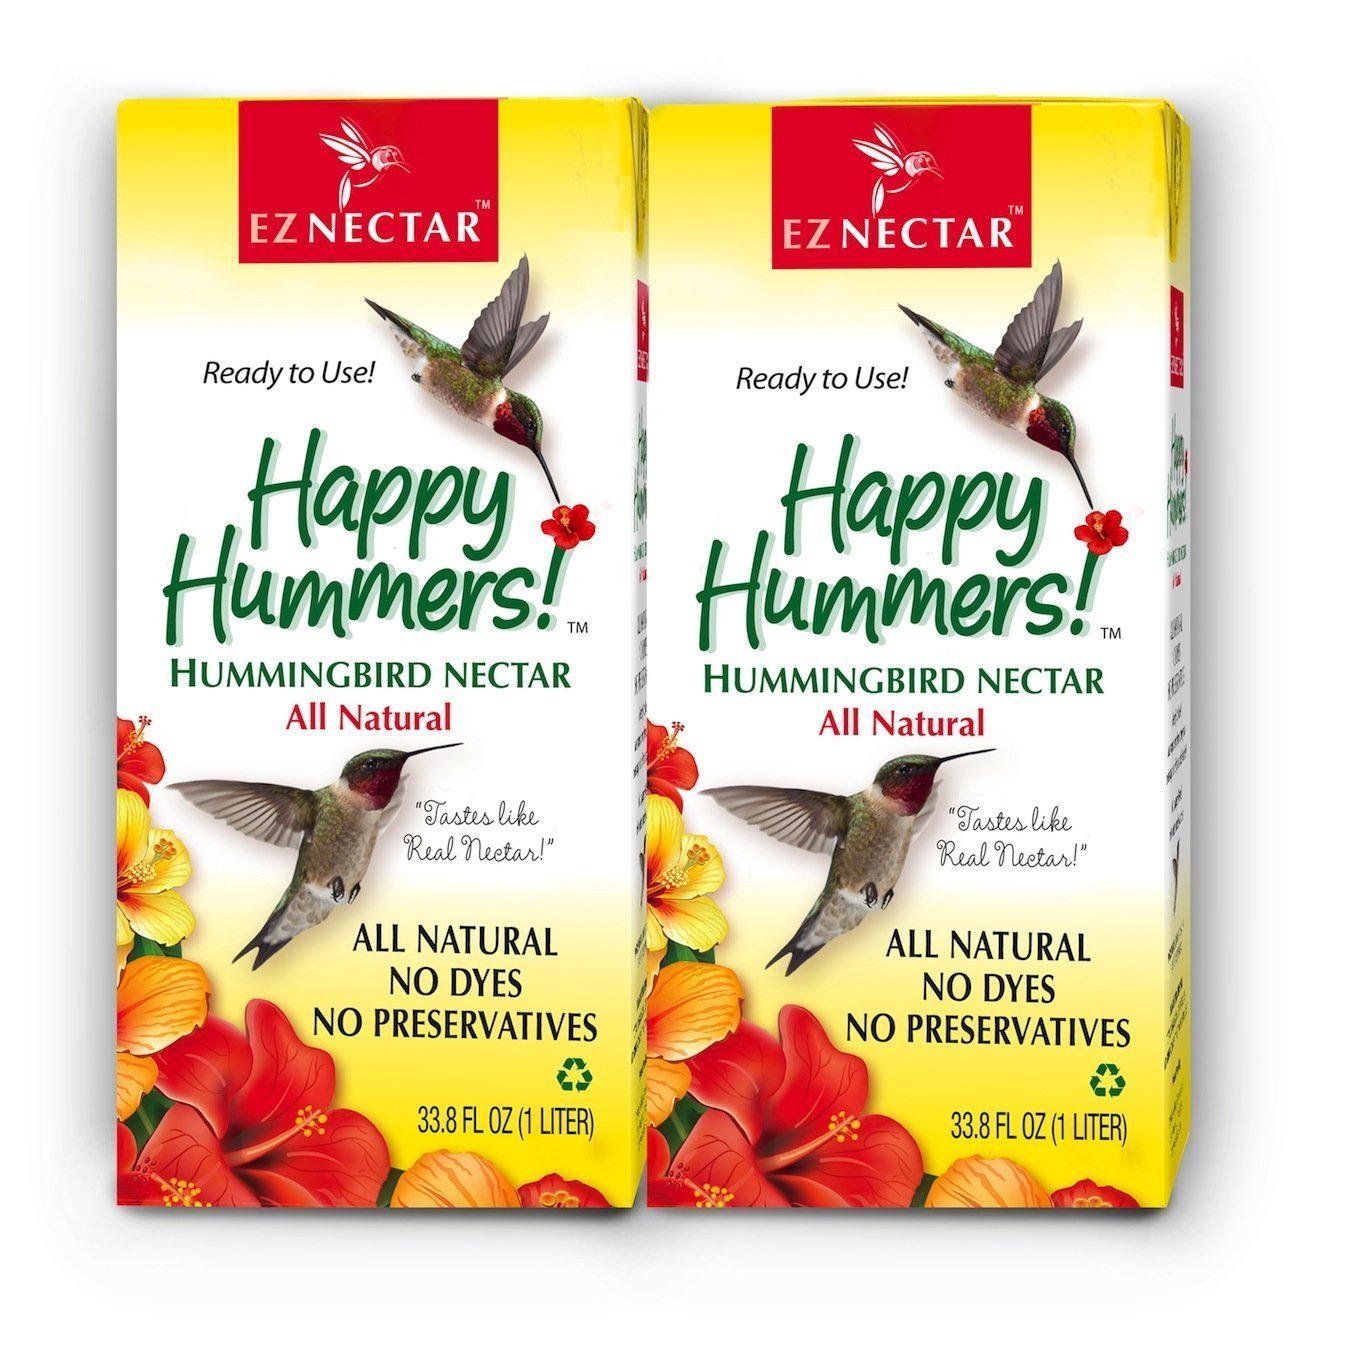 EZNectar (2 Piece) - 67.6 FL Ounce Total, All-Natural, Sugar & Water Only, Ready-to-Use Hummingbird Food - Nectar 864596000208